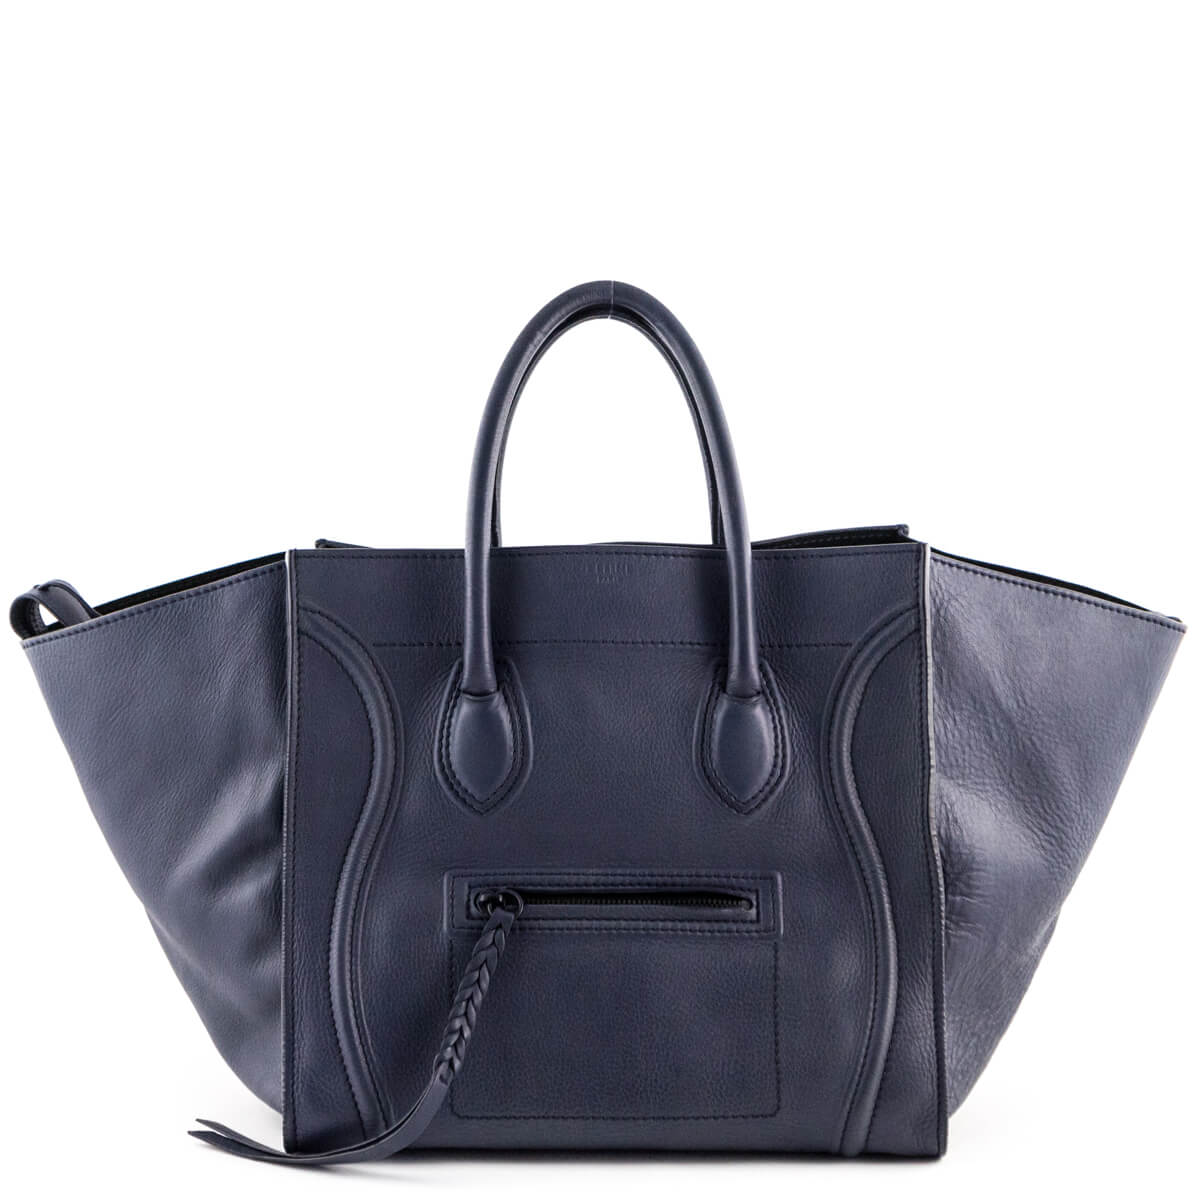 b9488c12d8e7 Celine Dark Blue Calfskin Medium Phantom - LOVE that BAG - Preowned  Authentic Designer Handbags ...